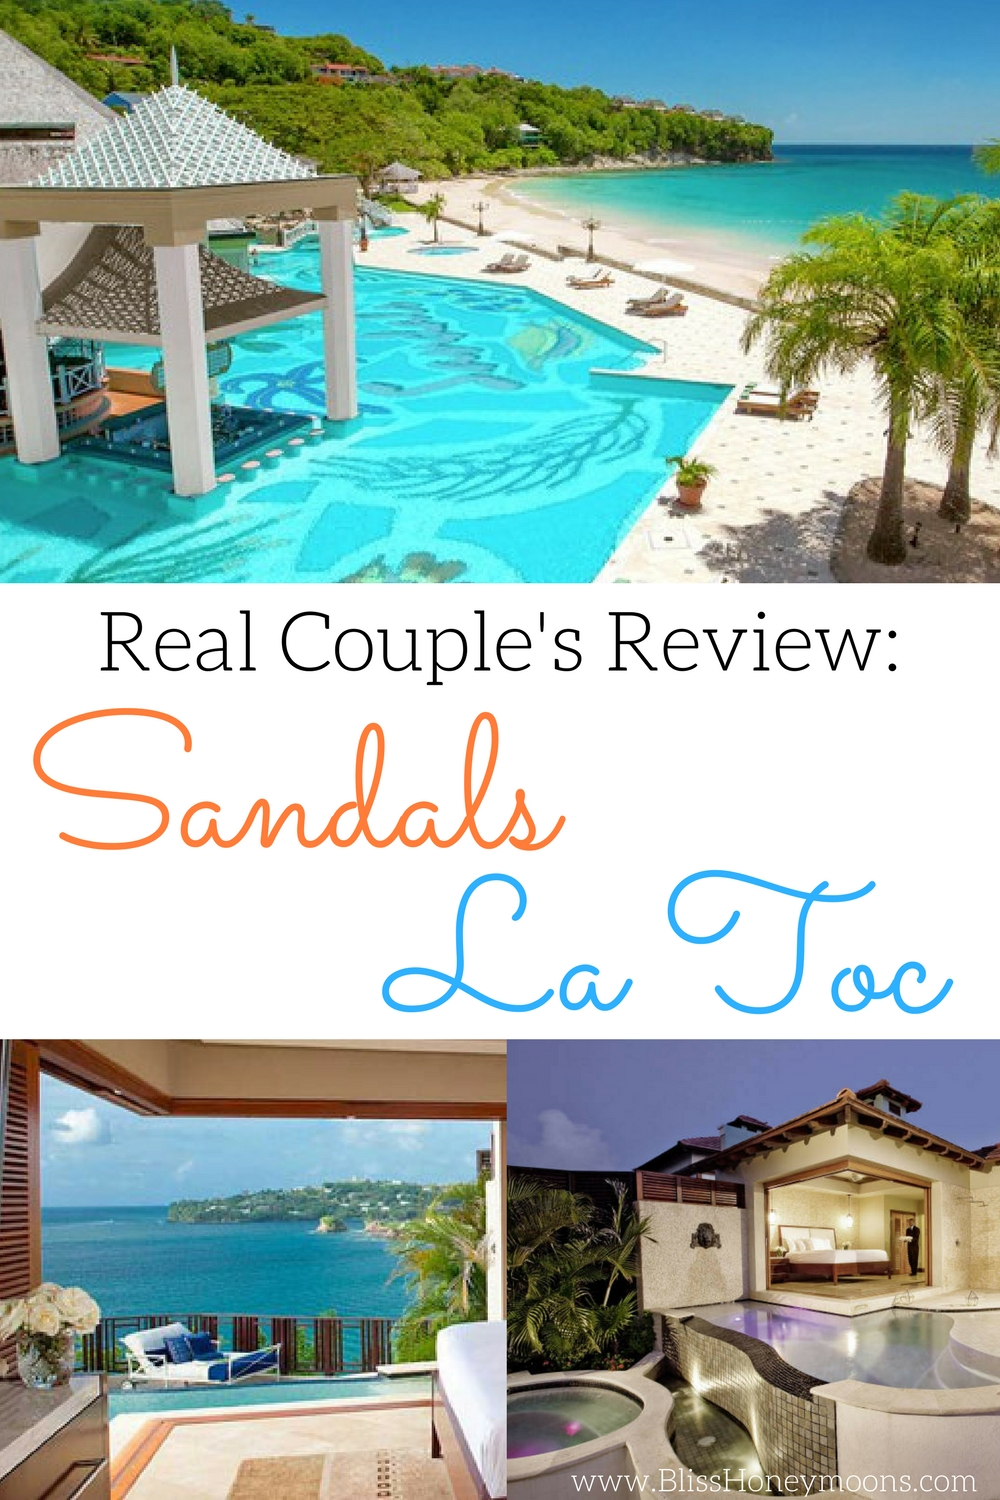 Sandals La Toc review, romantic travel locations, best travel experience, surprise room upgrade, Sandals La Toc Soy restaurant, Bliss Honeymoons review, best romance travel agent